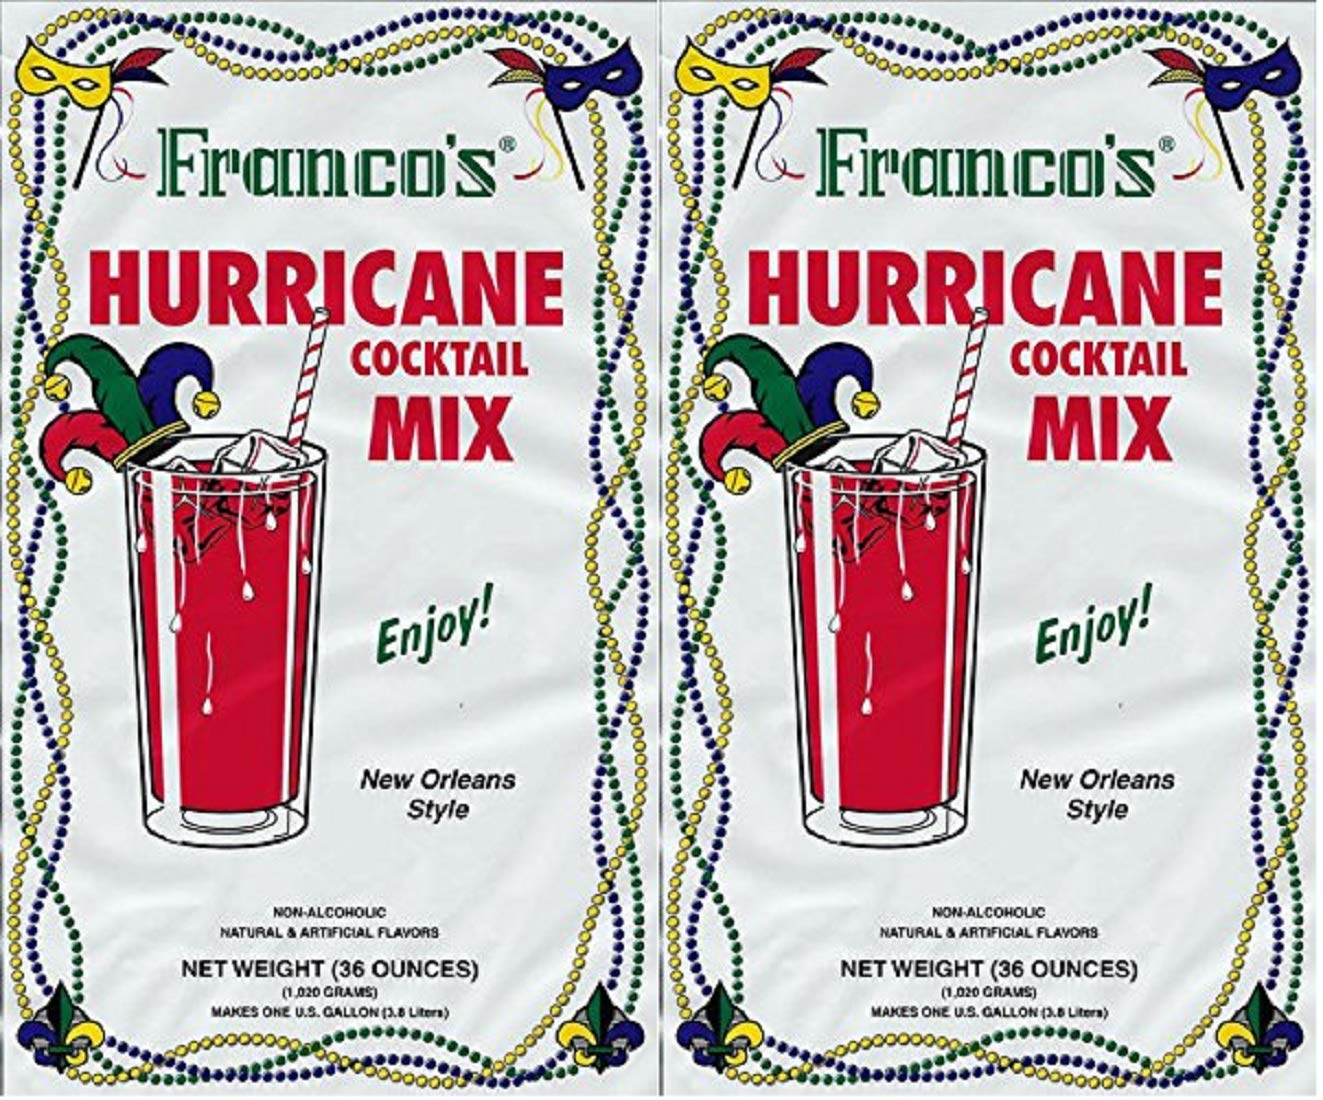 Franco's New Orleans Style Hurricane Cocktail Mix, 36 Ounce Pouch (Pack of 2, Makes 2 Gallons Total)